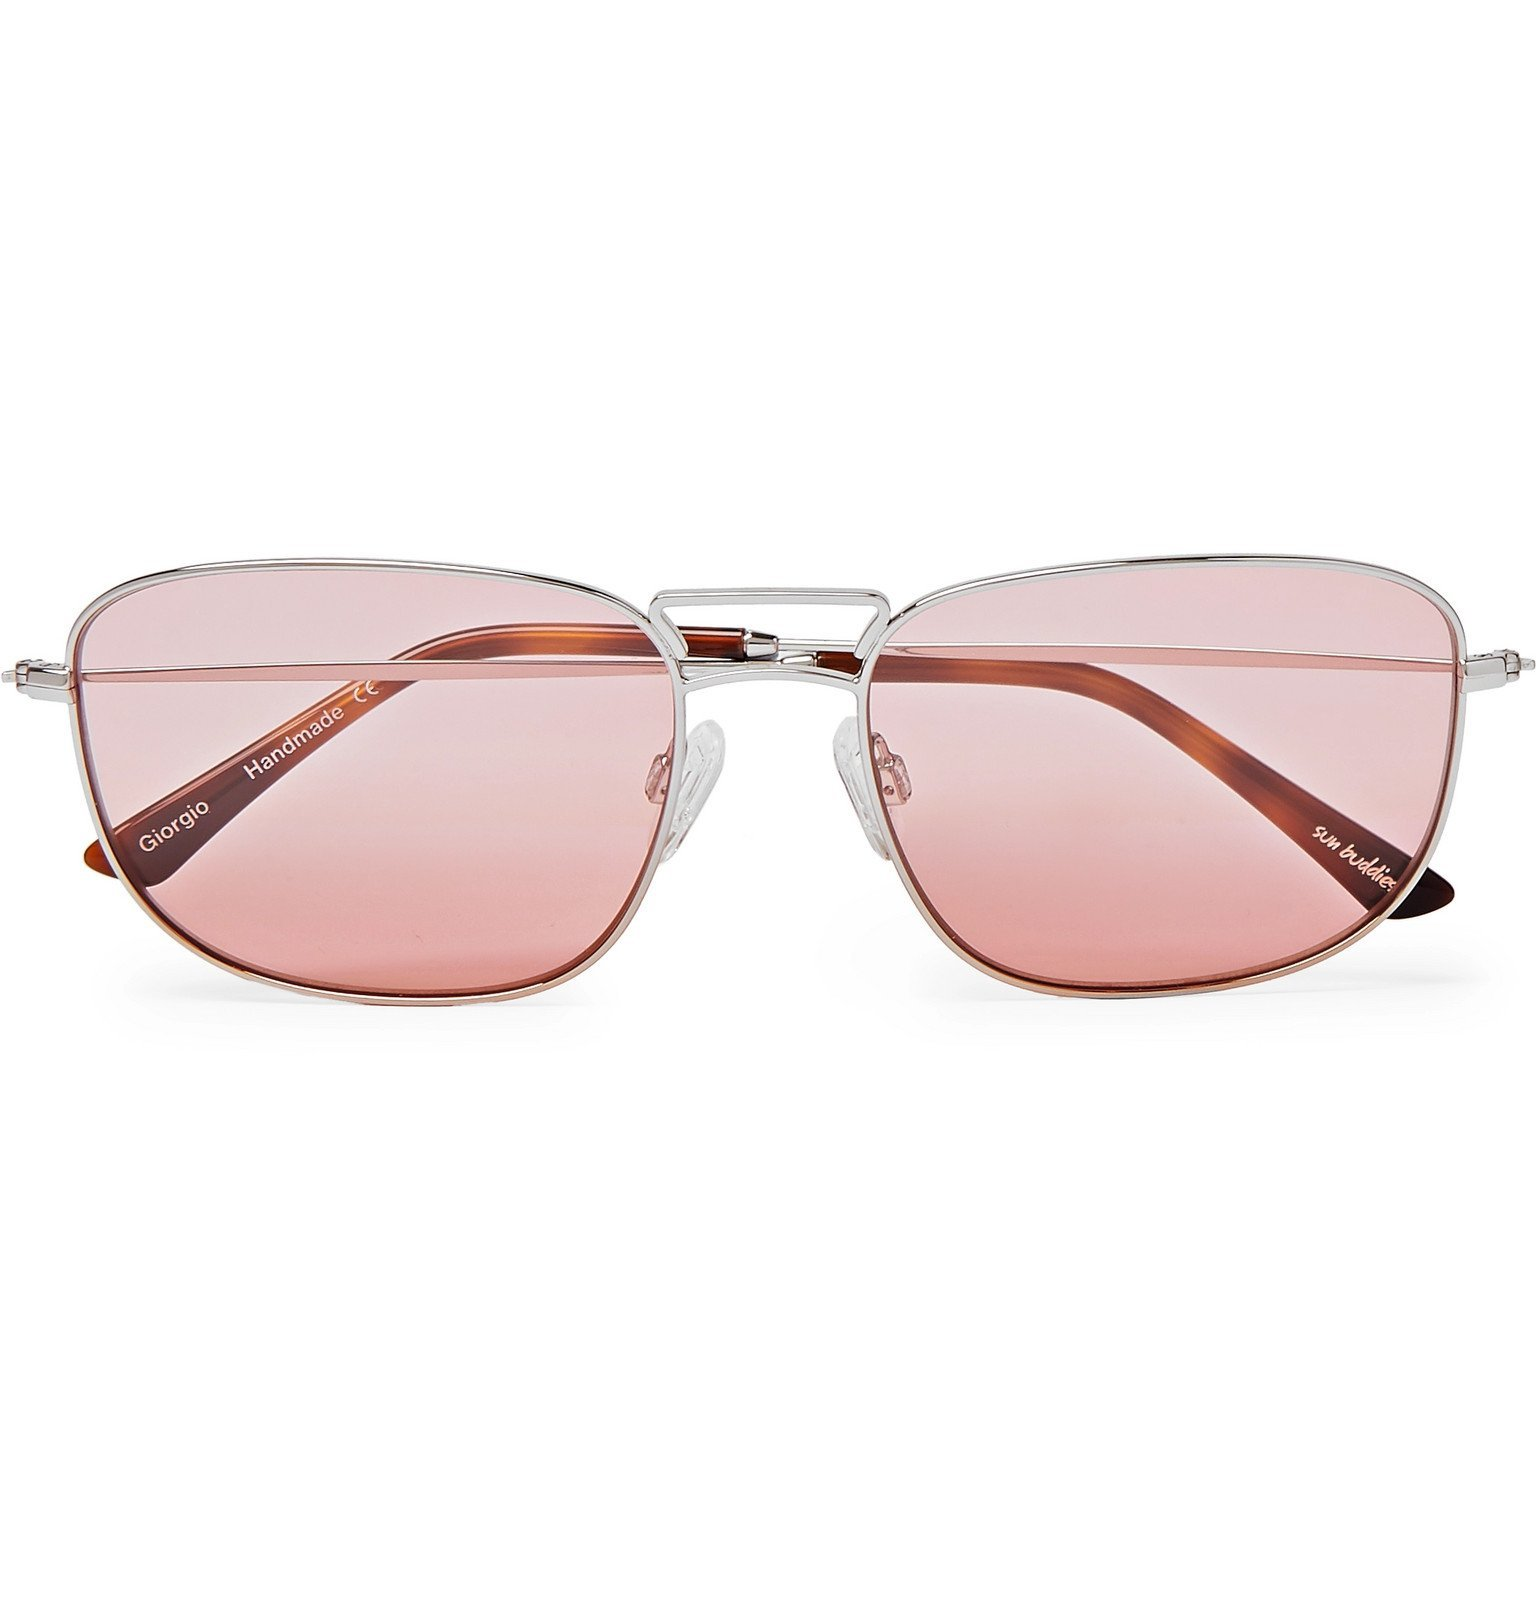 Photo: Sun Buddies - Caravan Aviator-Style Silver-Tone Sunglasses - Silver